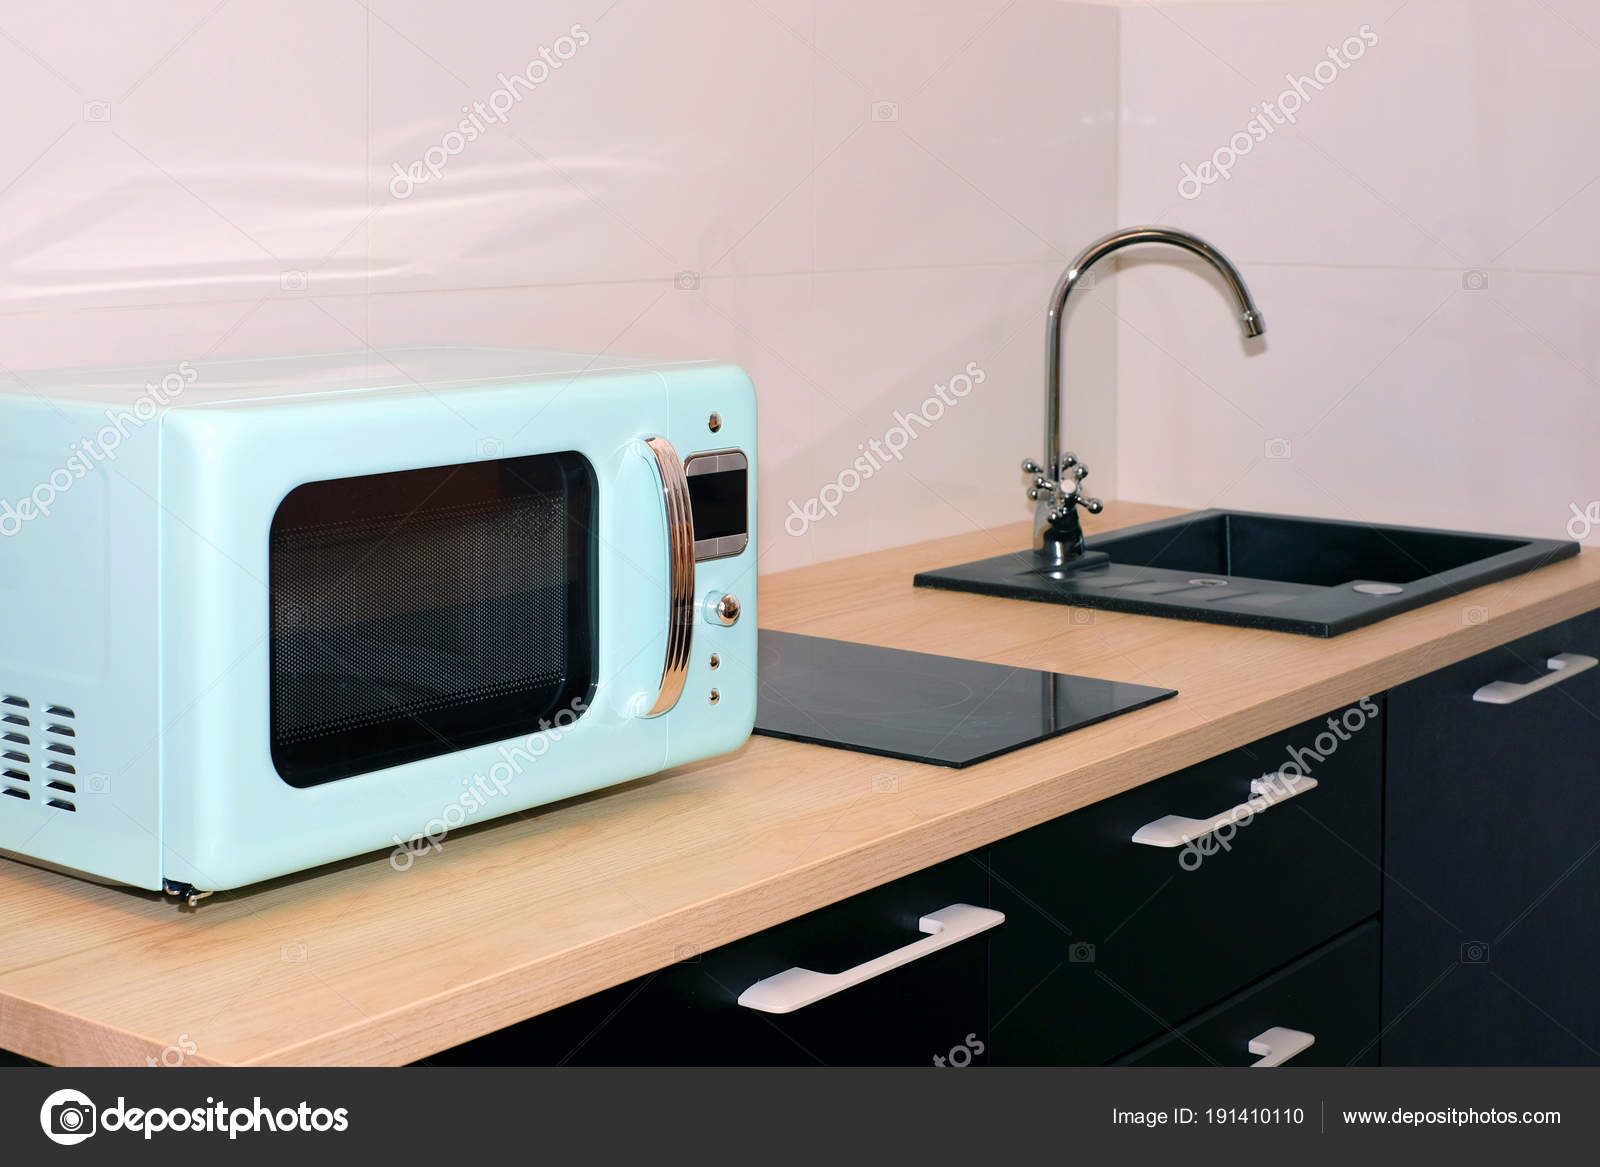 Kitchen Sink Water Tap Kitchen Modern Apartment Domestic Appliances  Microwave U2014 Stock Photo